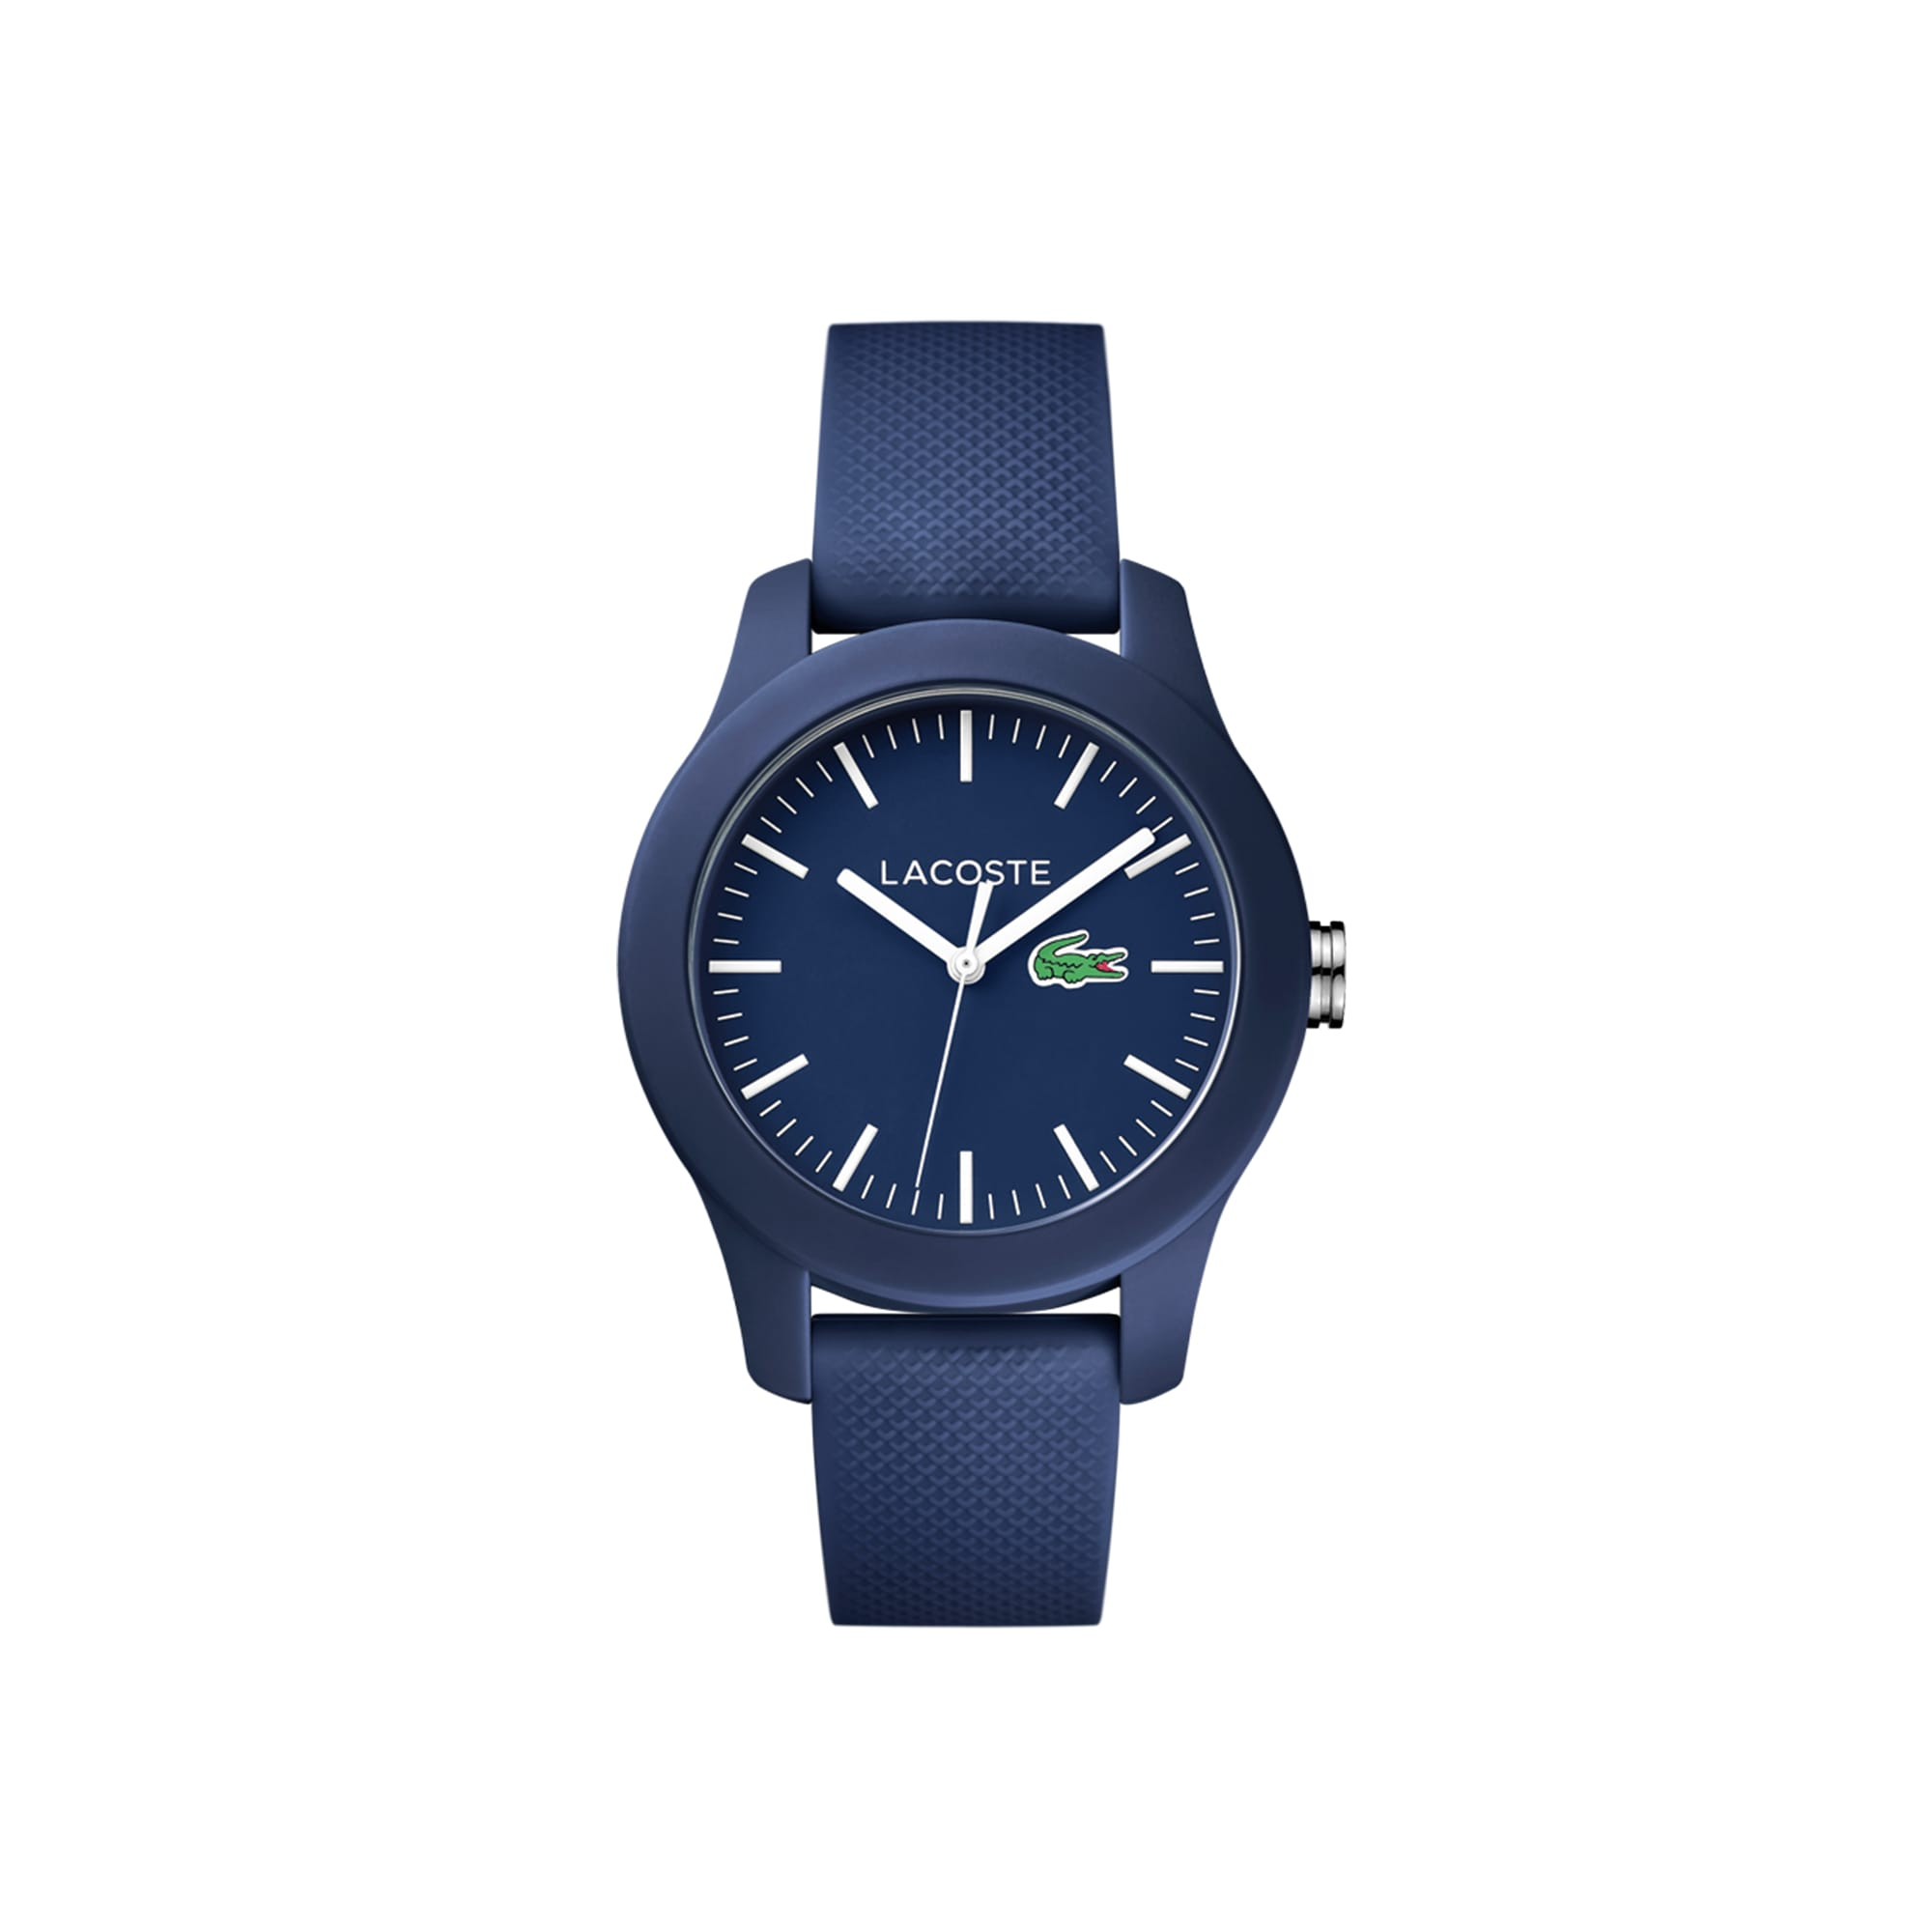 Lacoste 12.12 Watch Women blue